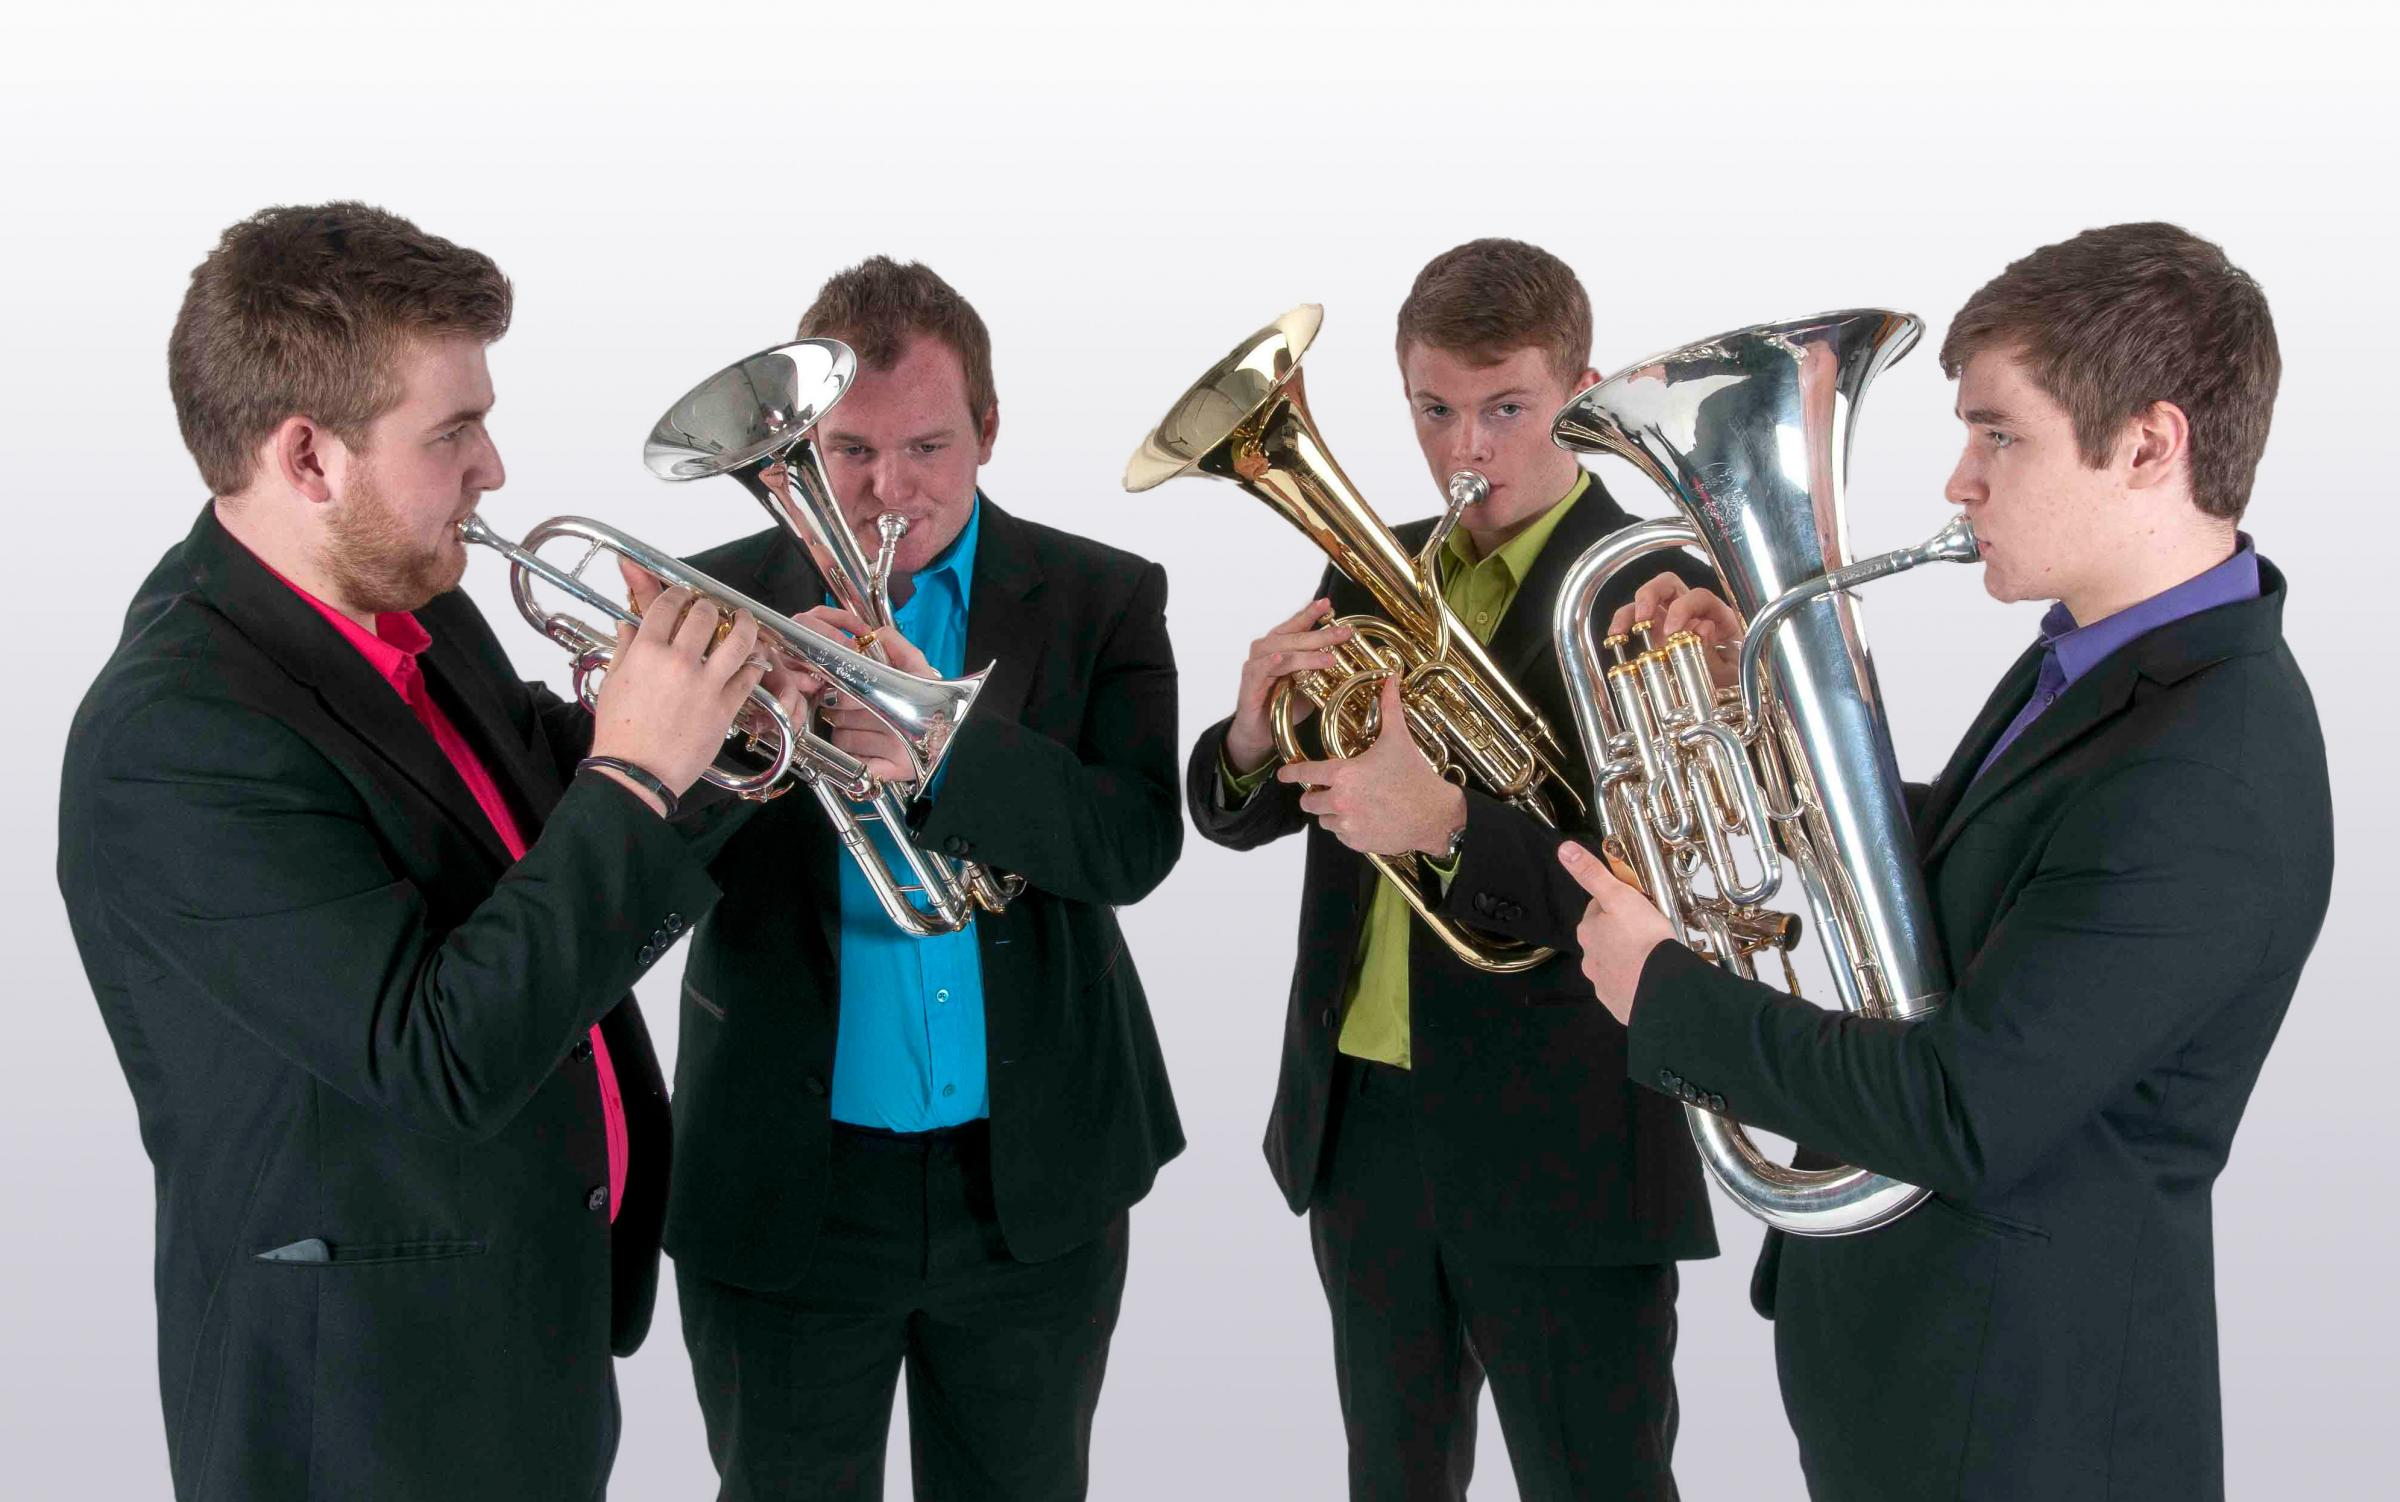 The A4 Brass Quartet will play at the Tower Digital Arts Centre with Helensburgh Music Society on Saturday, February 16